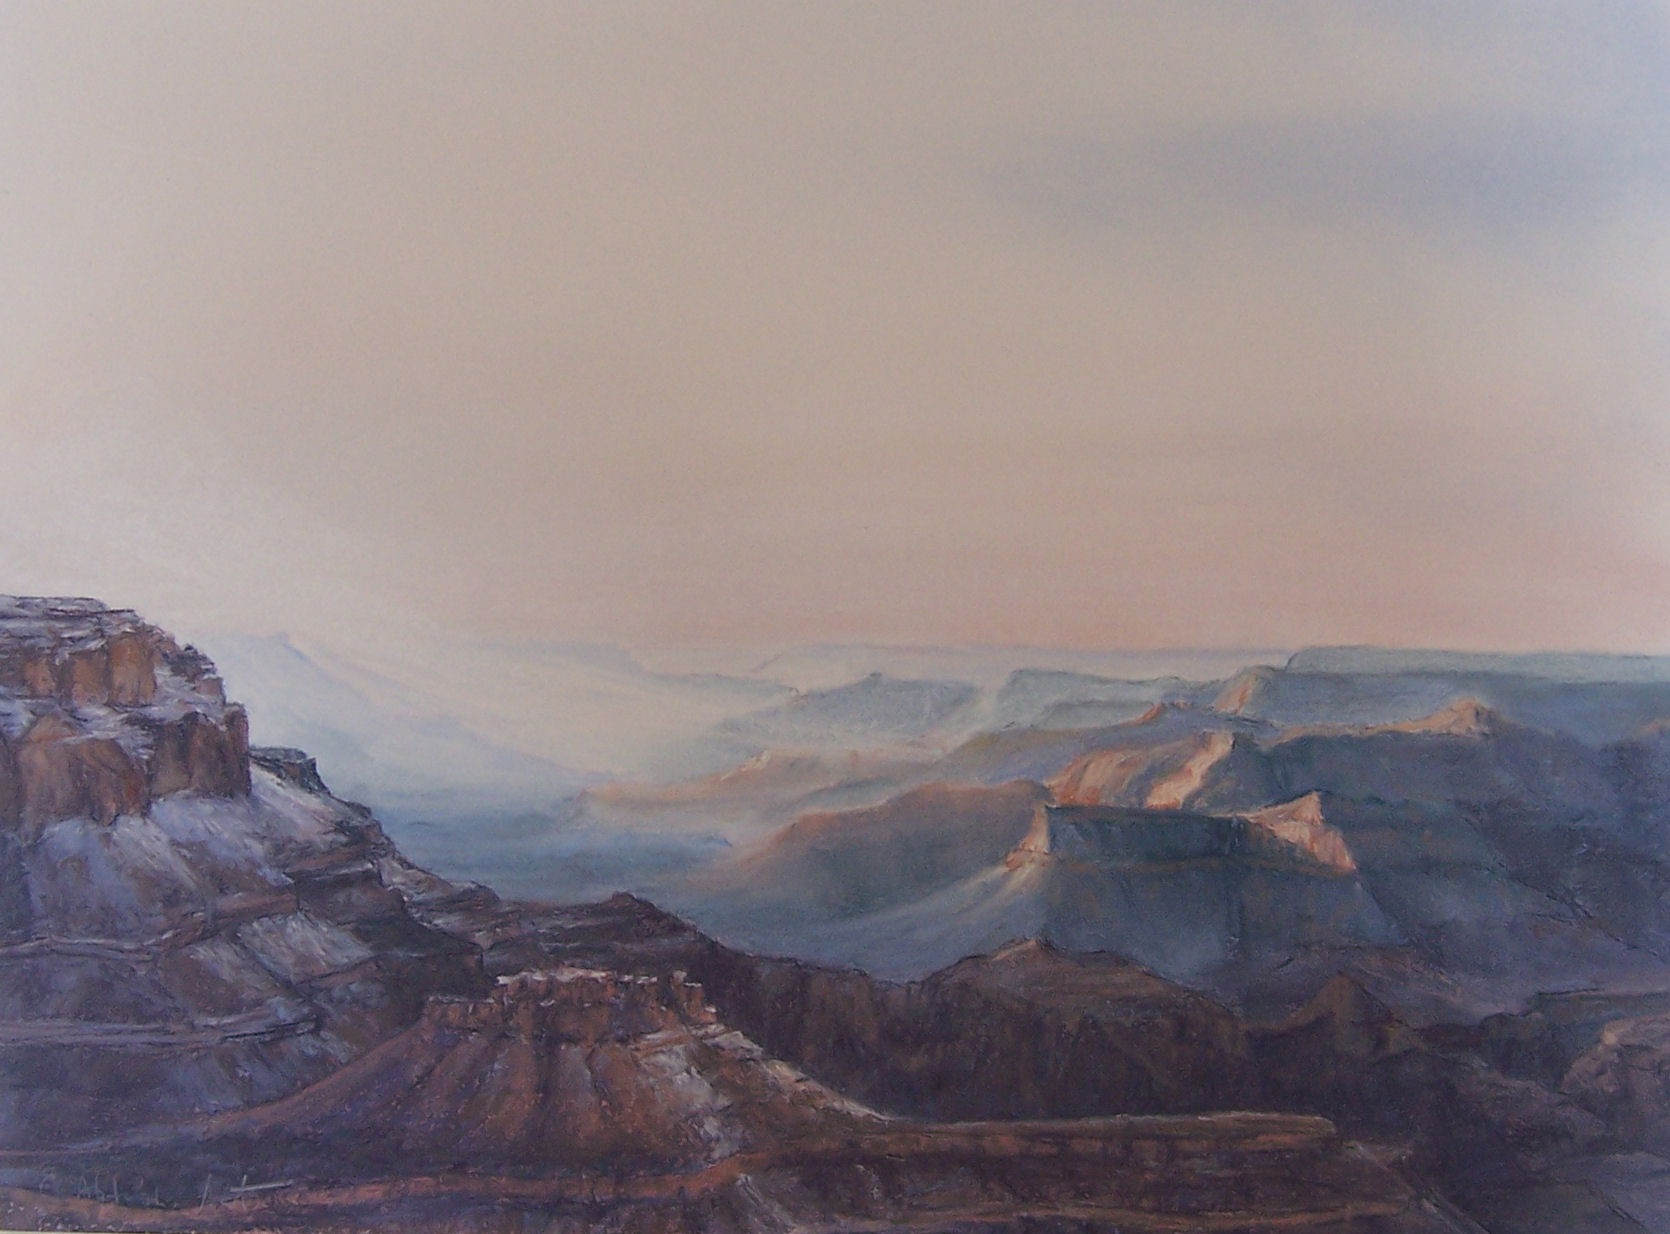 Grand_Canyon_Extremes_-_ONeill_Butte_and_Beyond.jpg